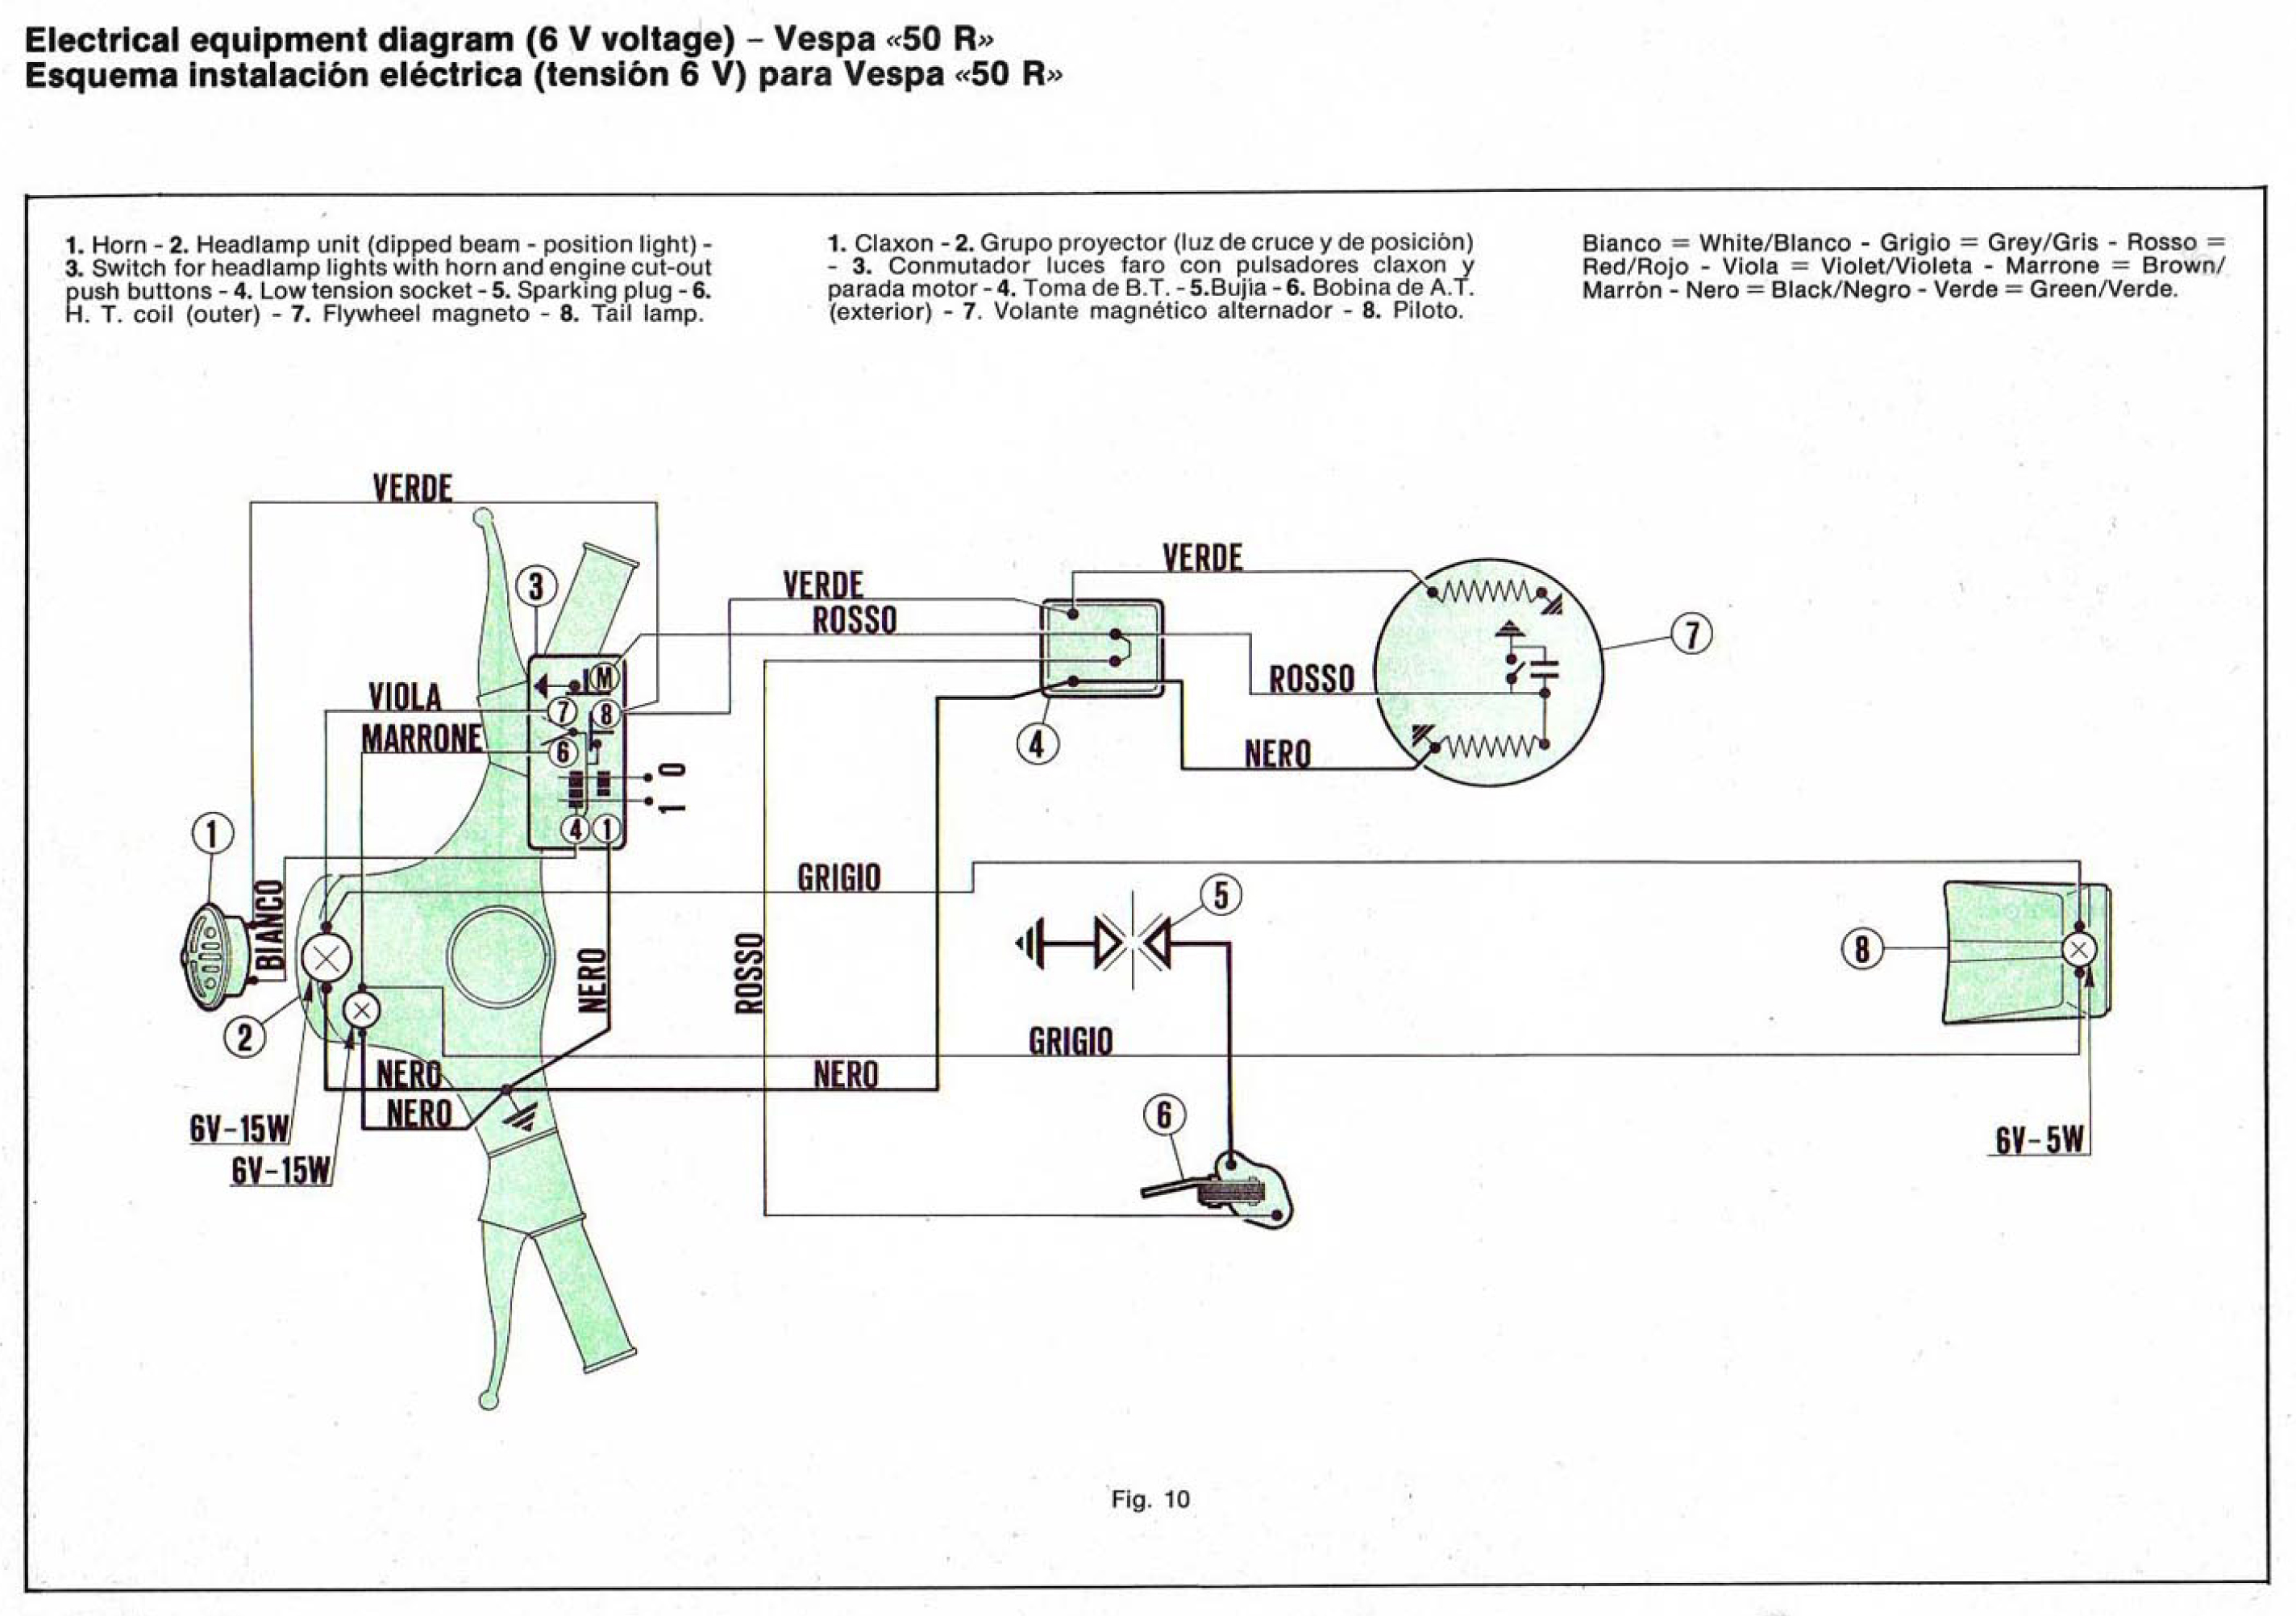 Wiring Diagrams - Wiring Diagrams on